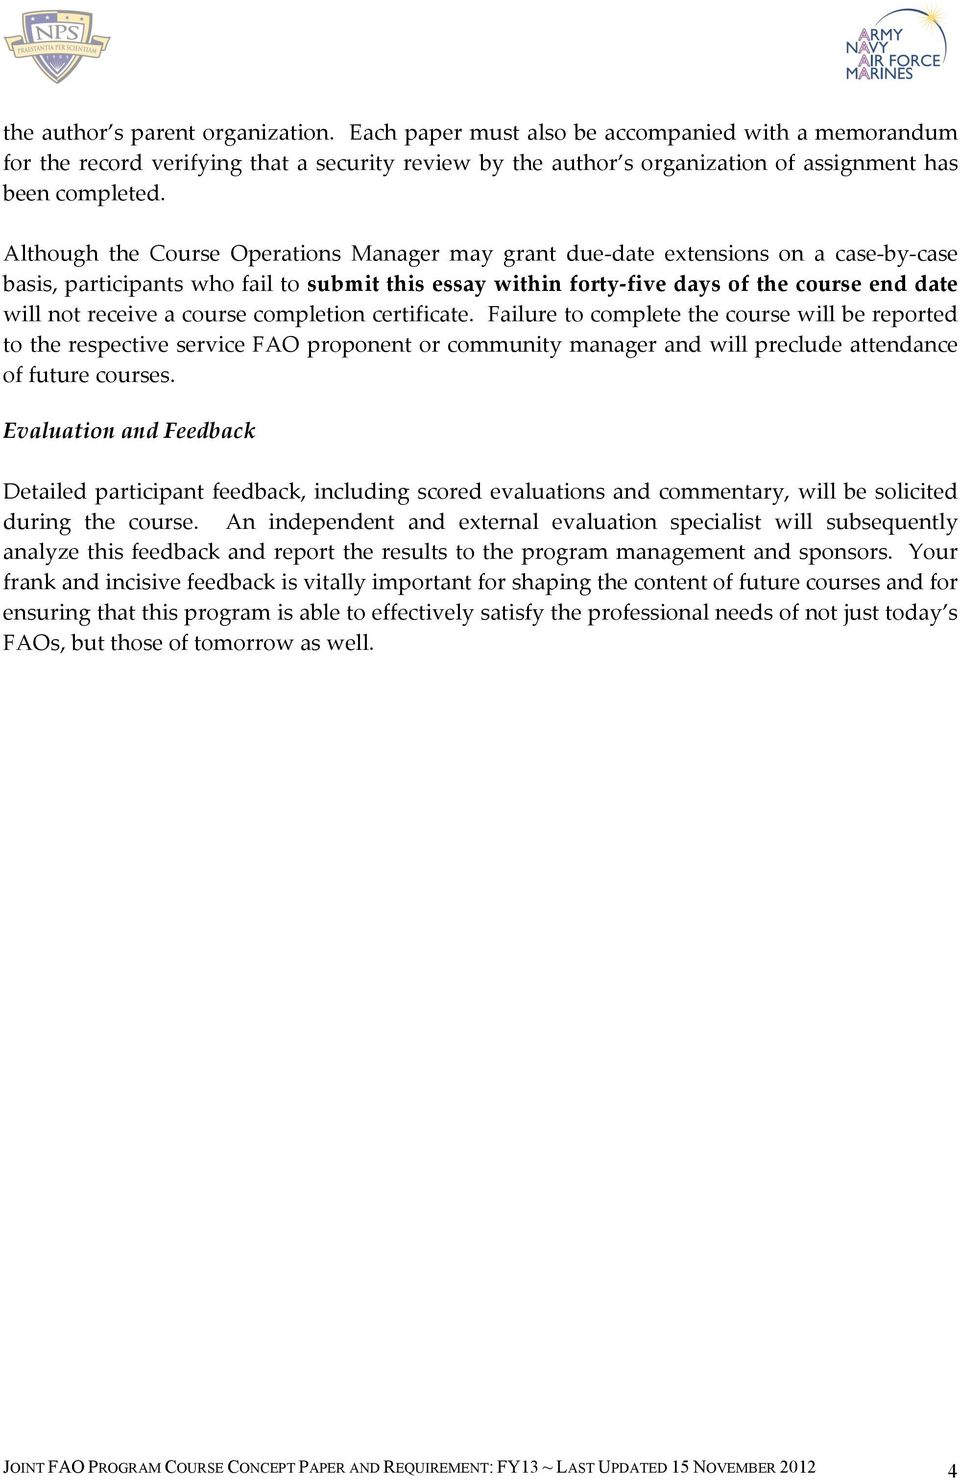 Fy13 Joint Fao Progam Phase Ii Course Pdf